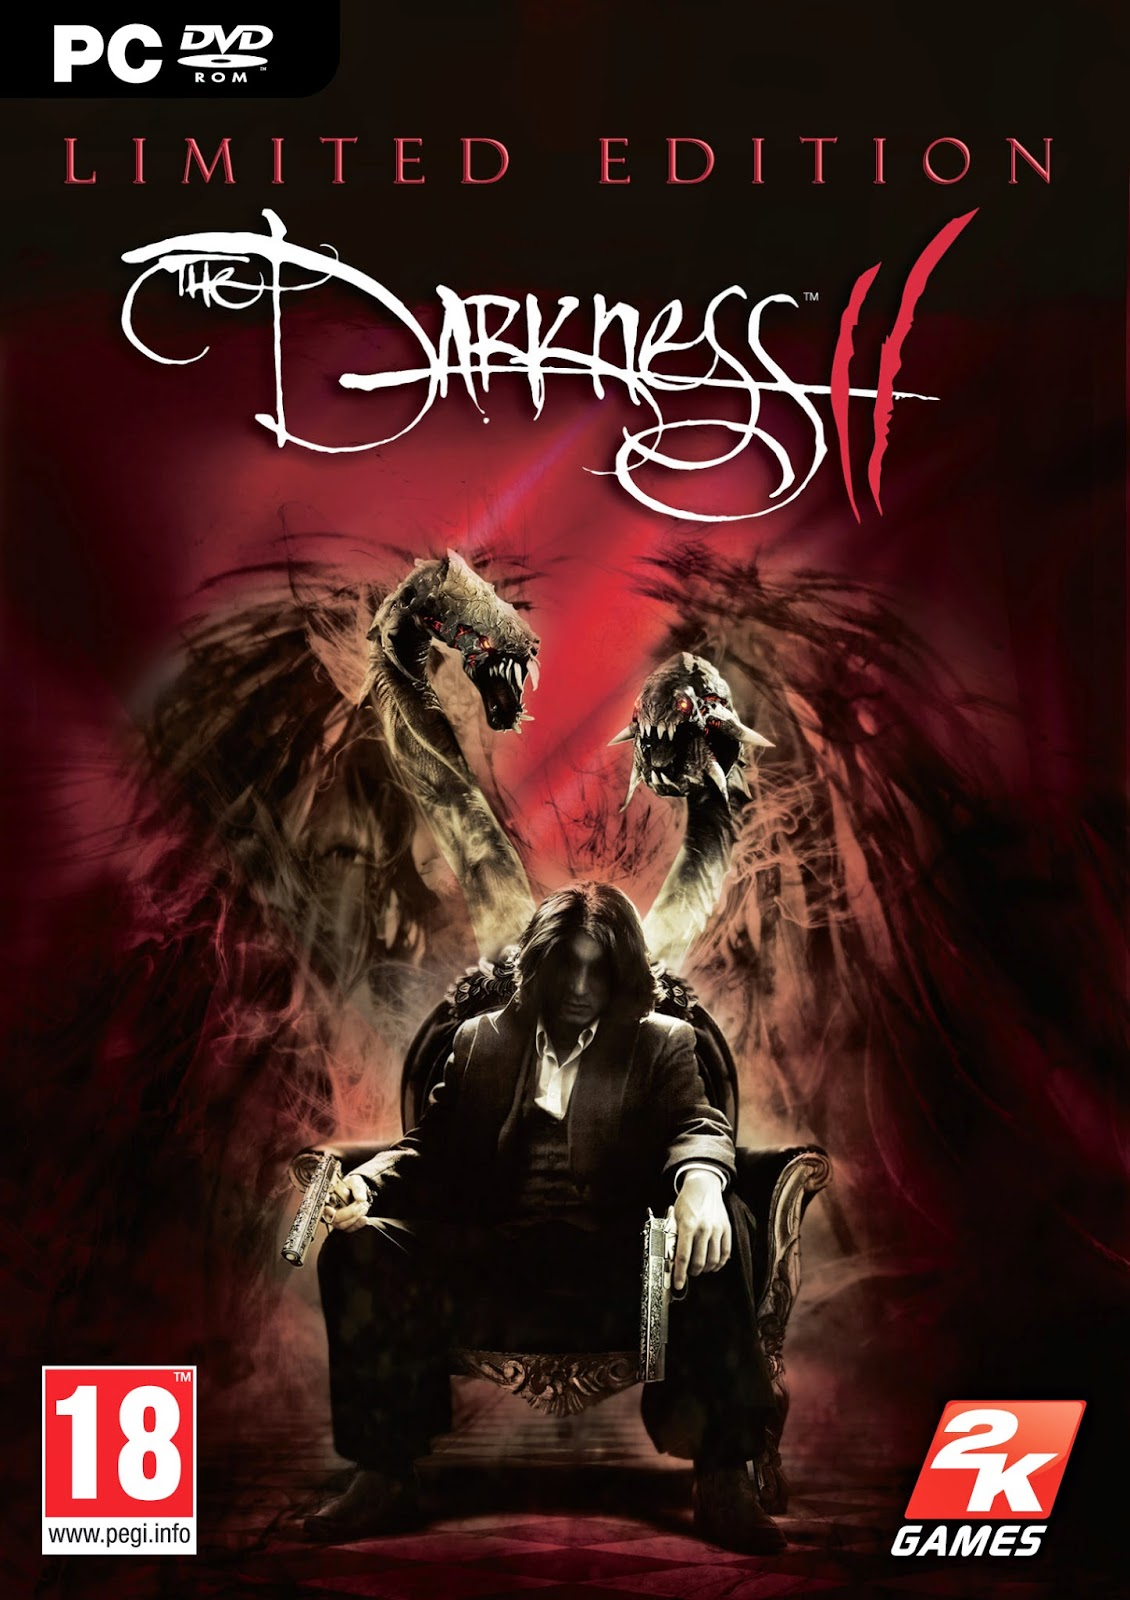 THE-DARKNESS-II-LIMITED-EDITION